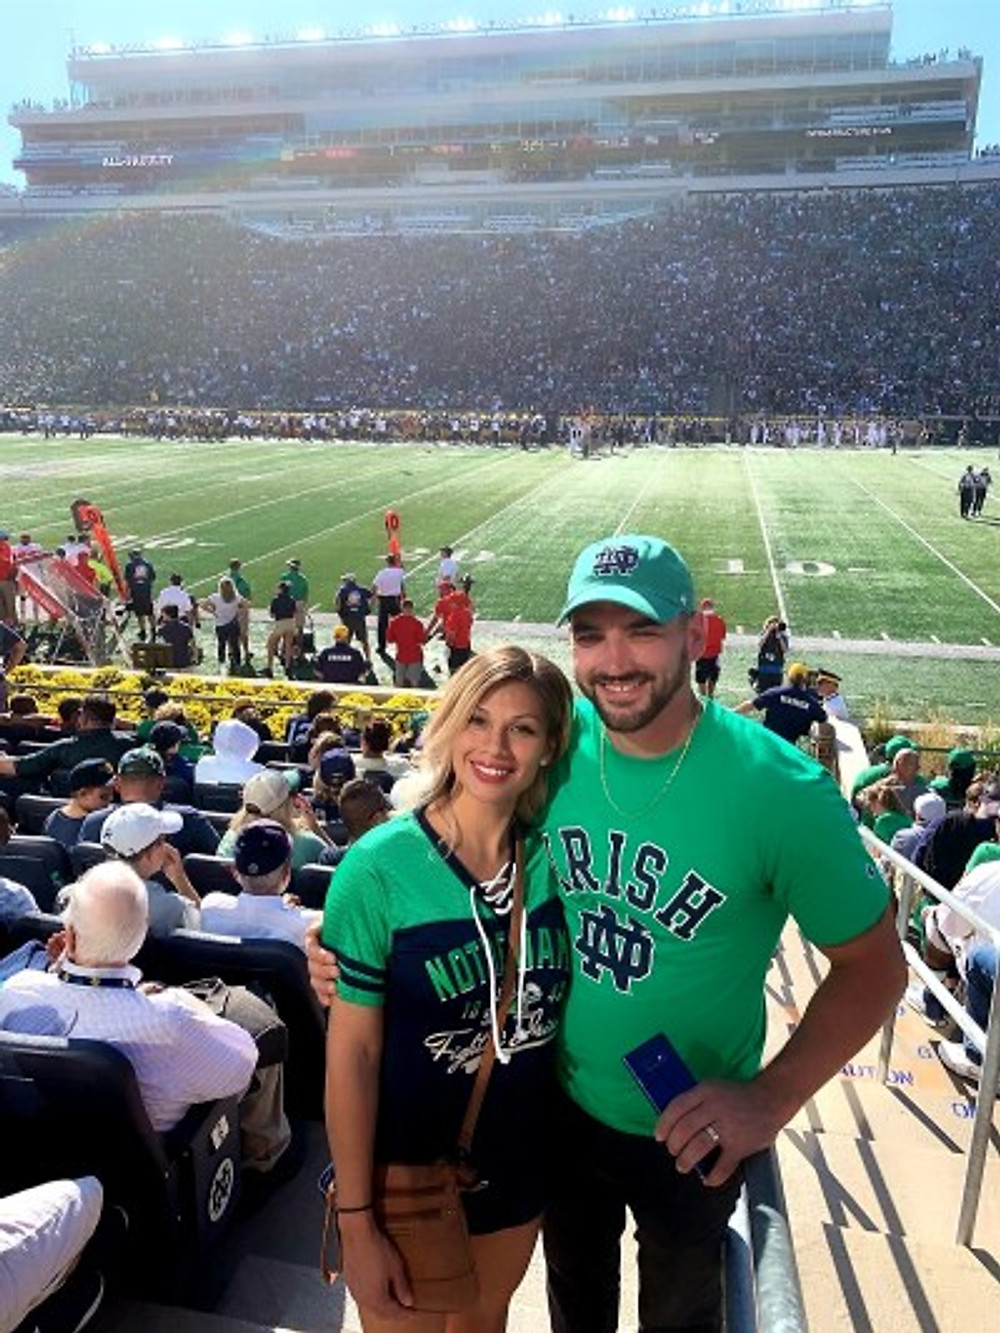 Isaac and his wife at a Notre Dame football game.